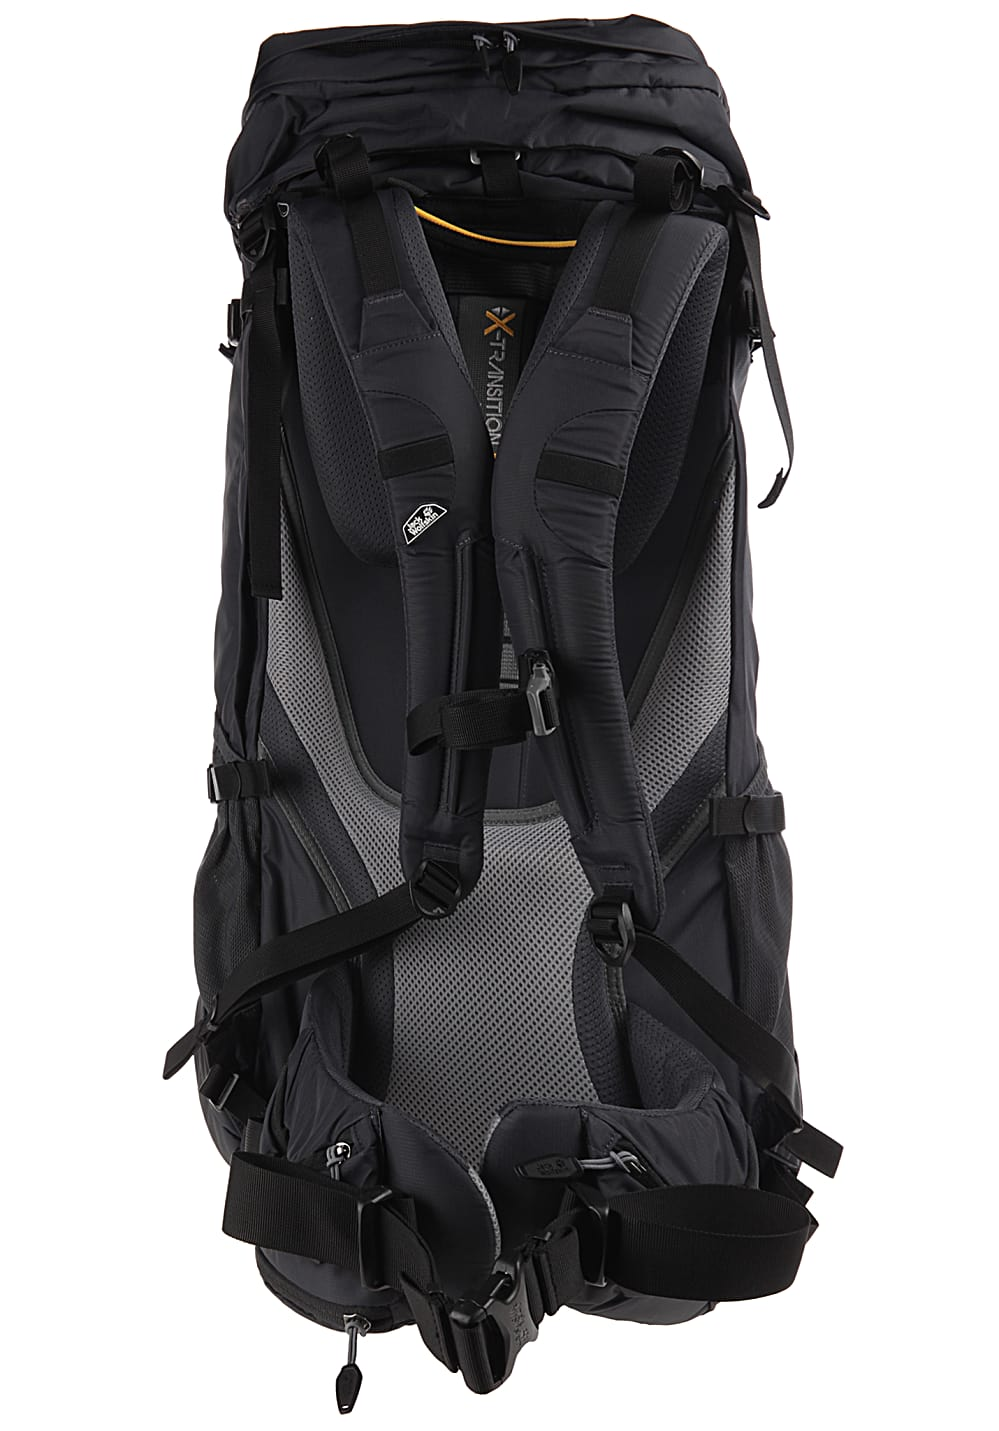 d7182b37684 Next. Jack Wolfskin. Highland Trail XT 50L - Backpack for Men. €199.95.  incl. VAT plus shipping costs